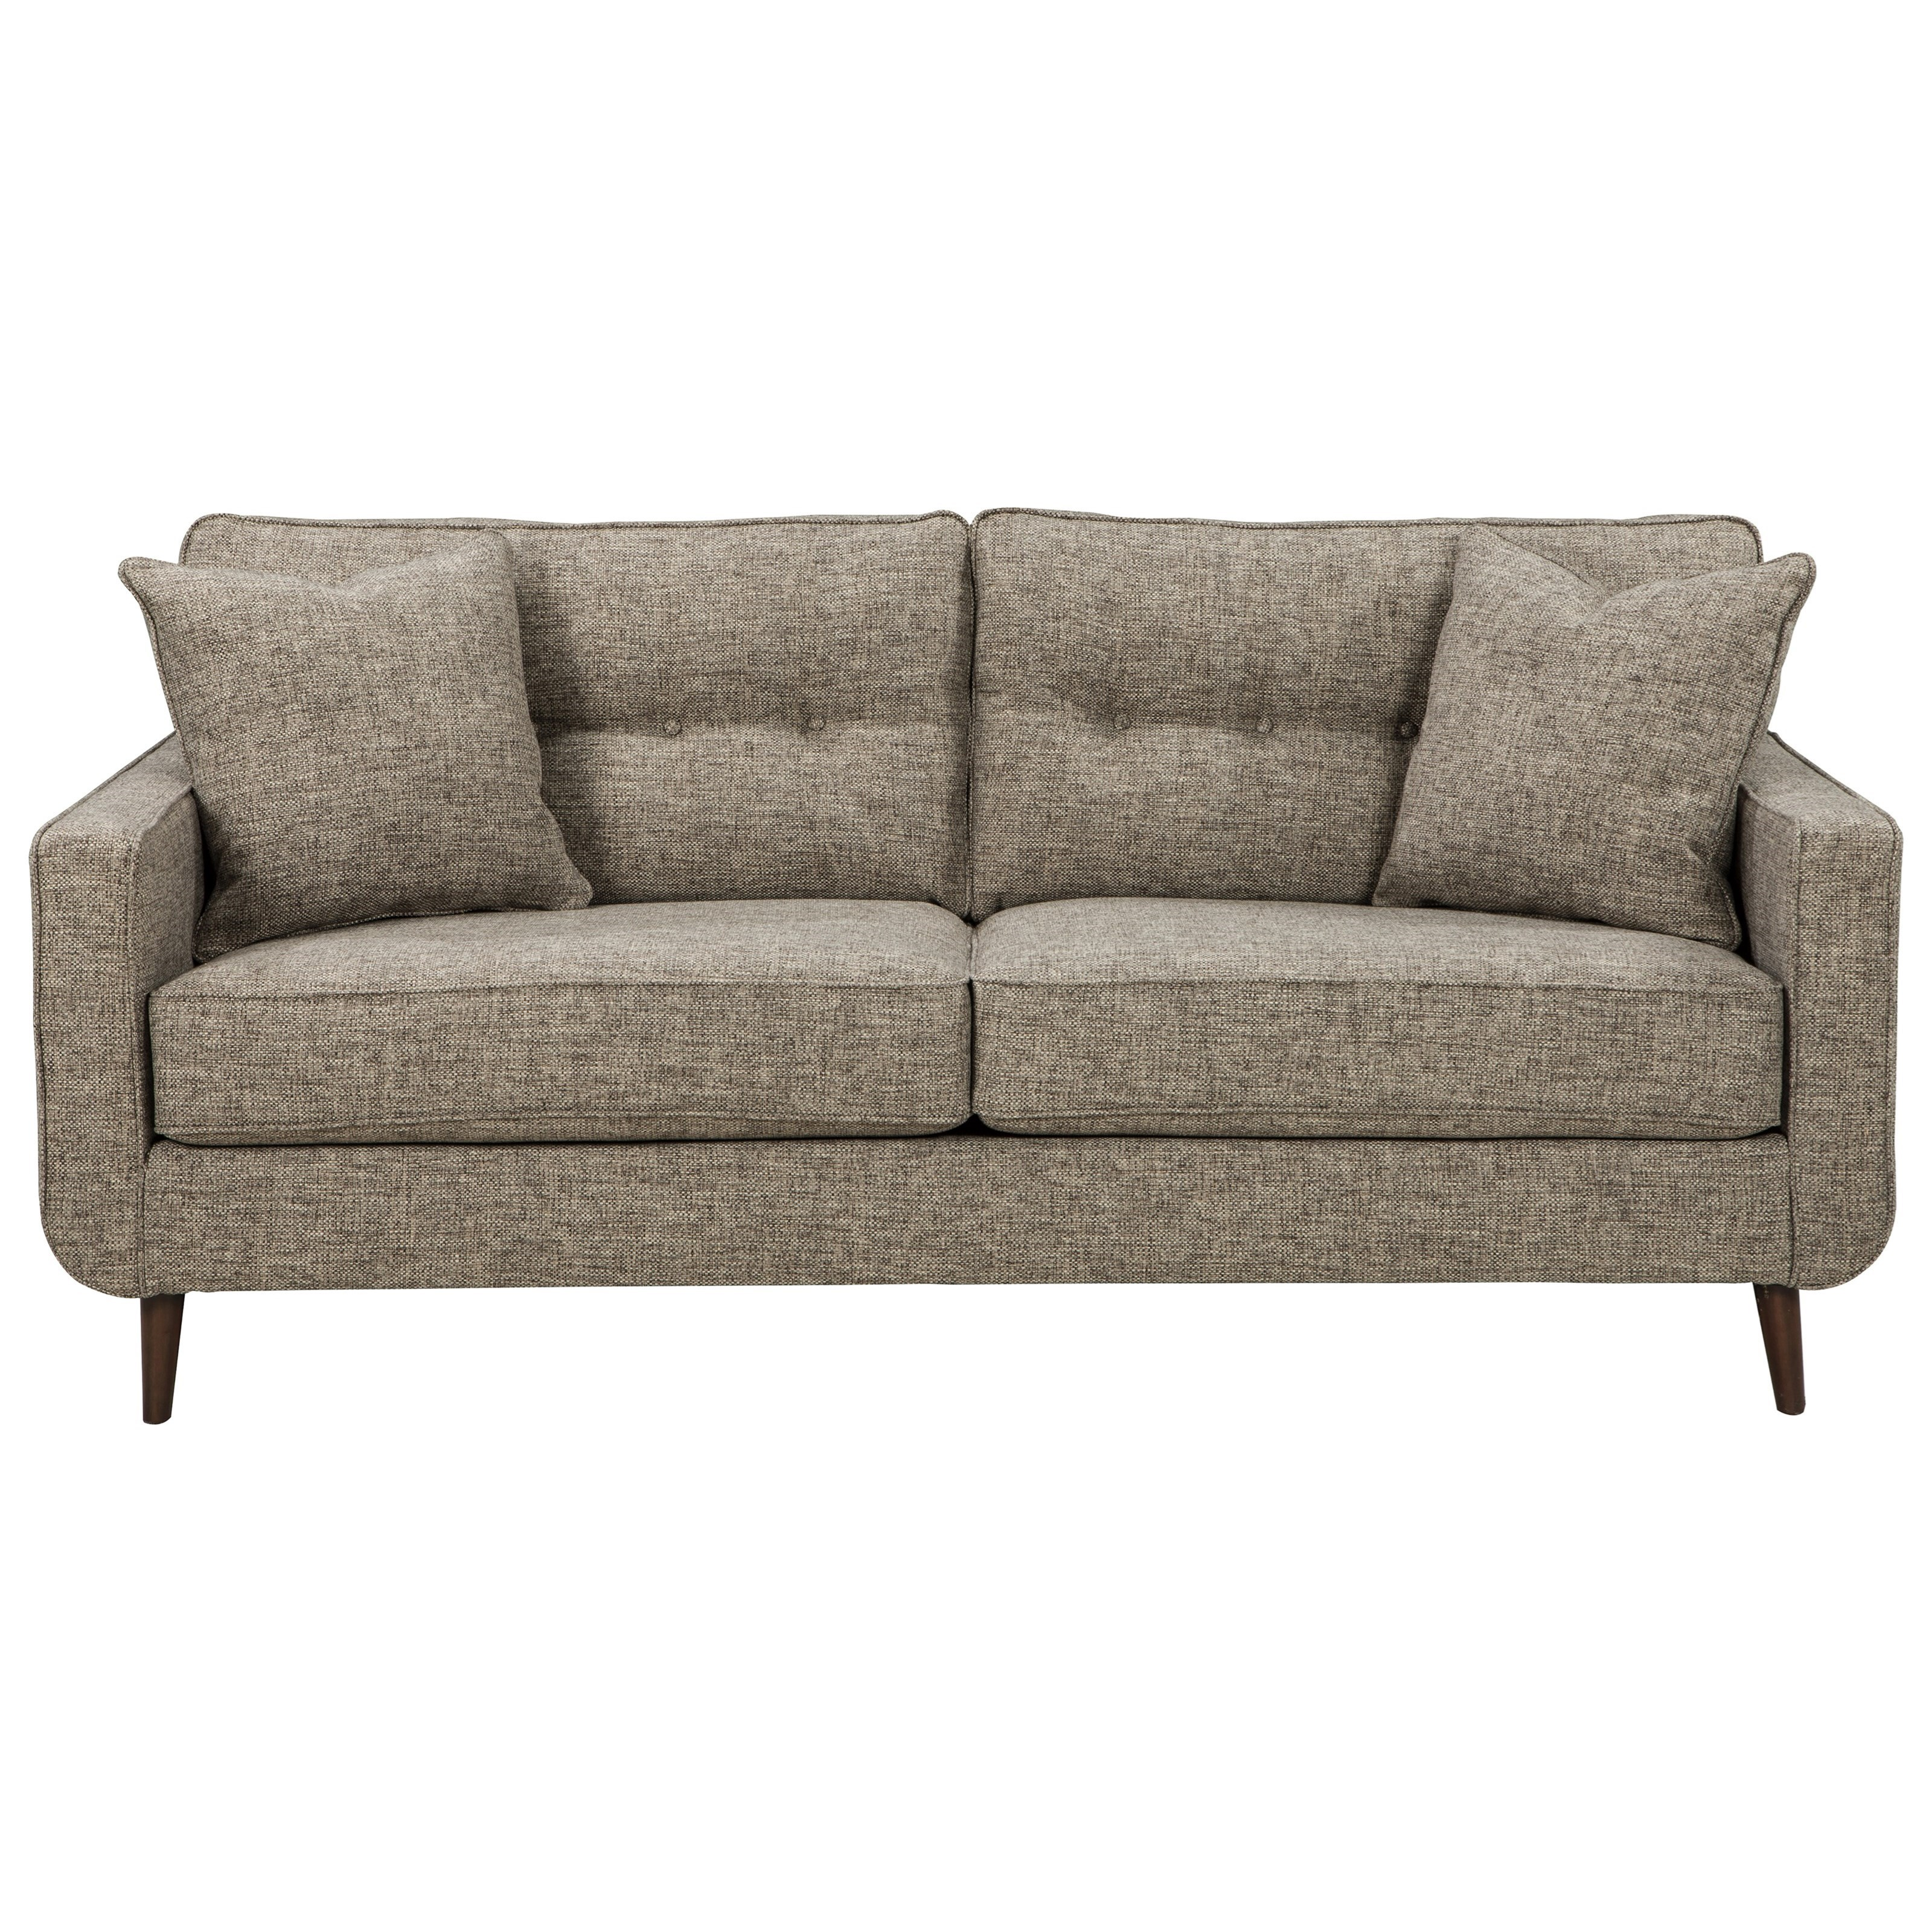 Dahra Sofa by Benchcraft at Red Knot